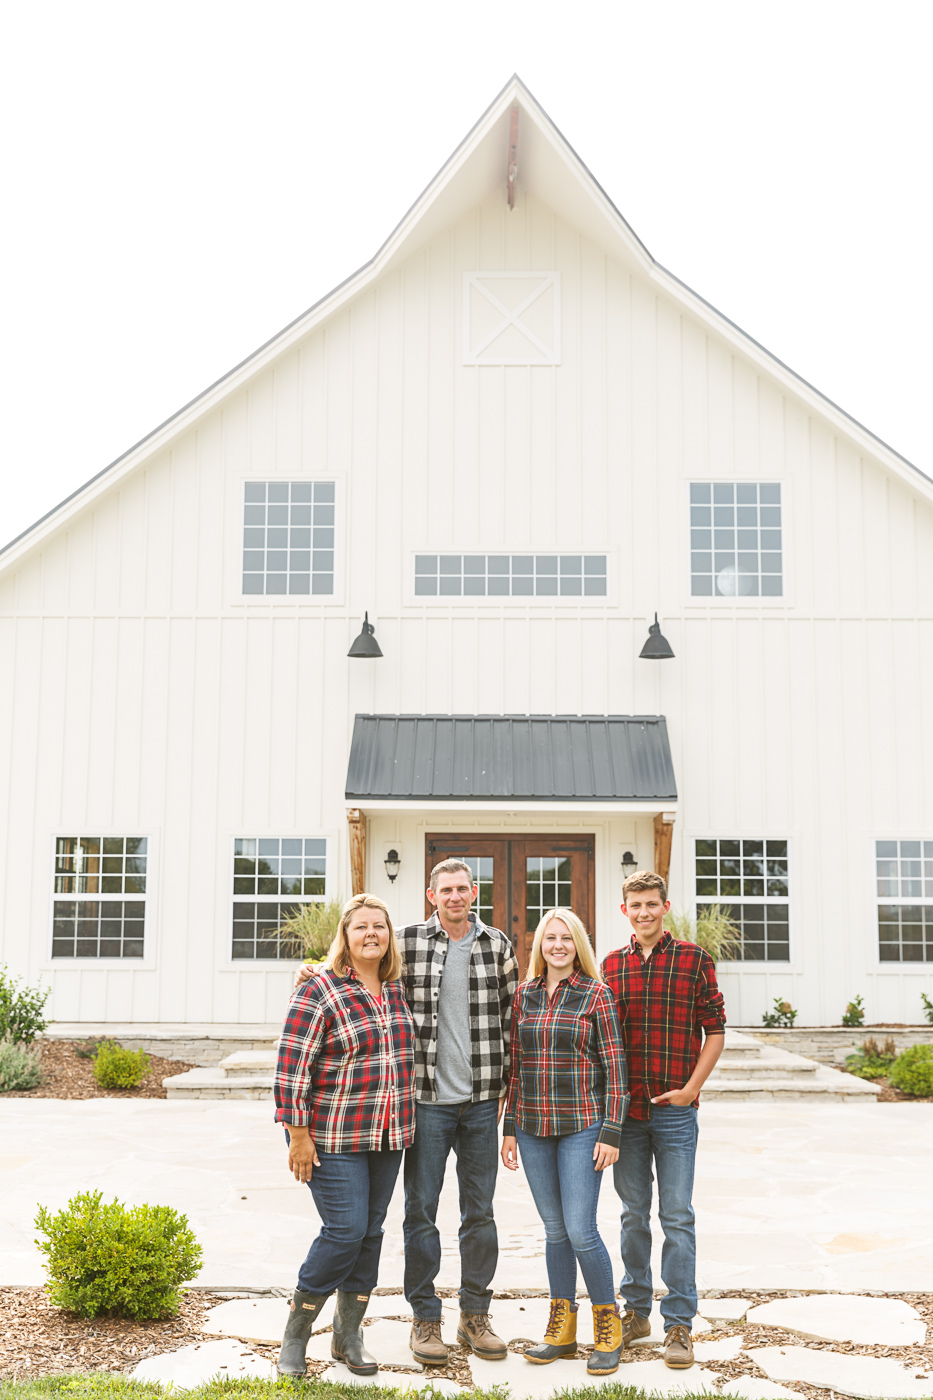 Jennifer, Joe, Abby, and Charlie Fahey (mom, dad, sister, brother) stand in front of the barn on the grounds of their organic apple orchard, Peck and Bushel, in Colgate, WI.